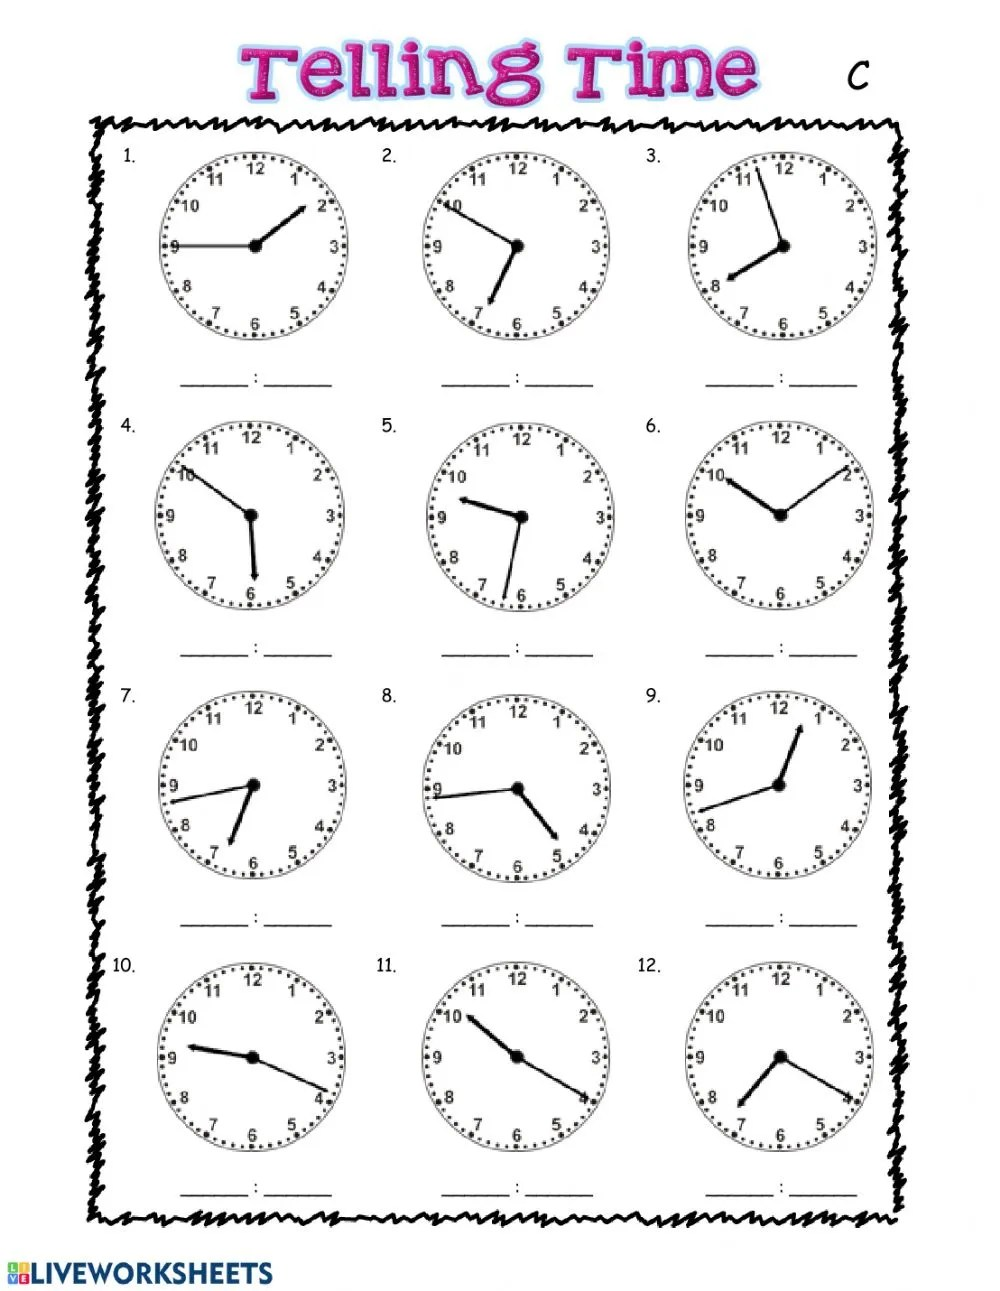 medium resolution of Telling Time interactive worksheet for grade 3